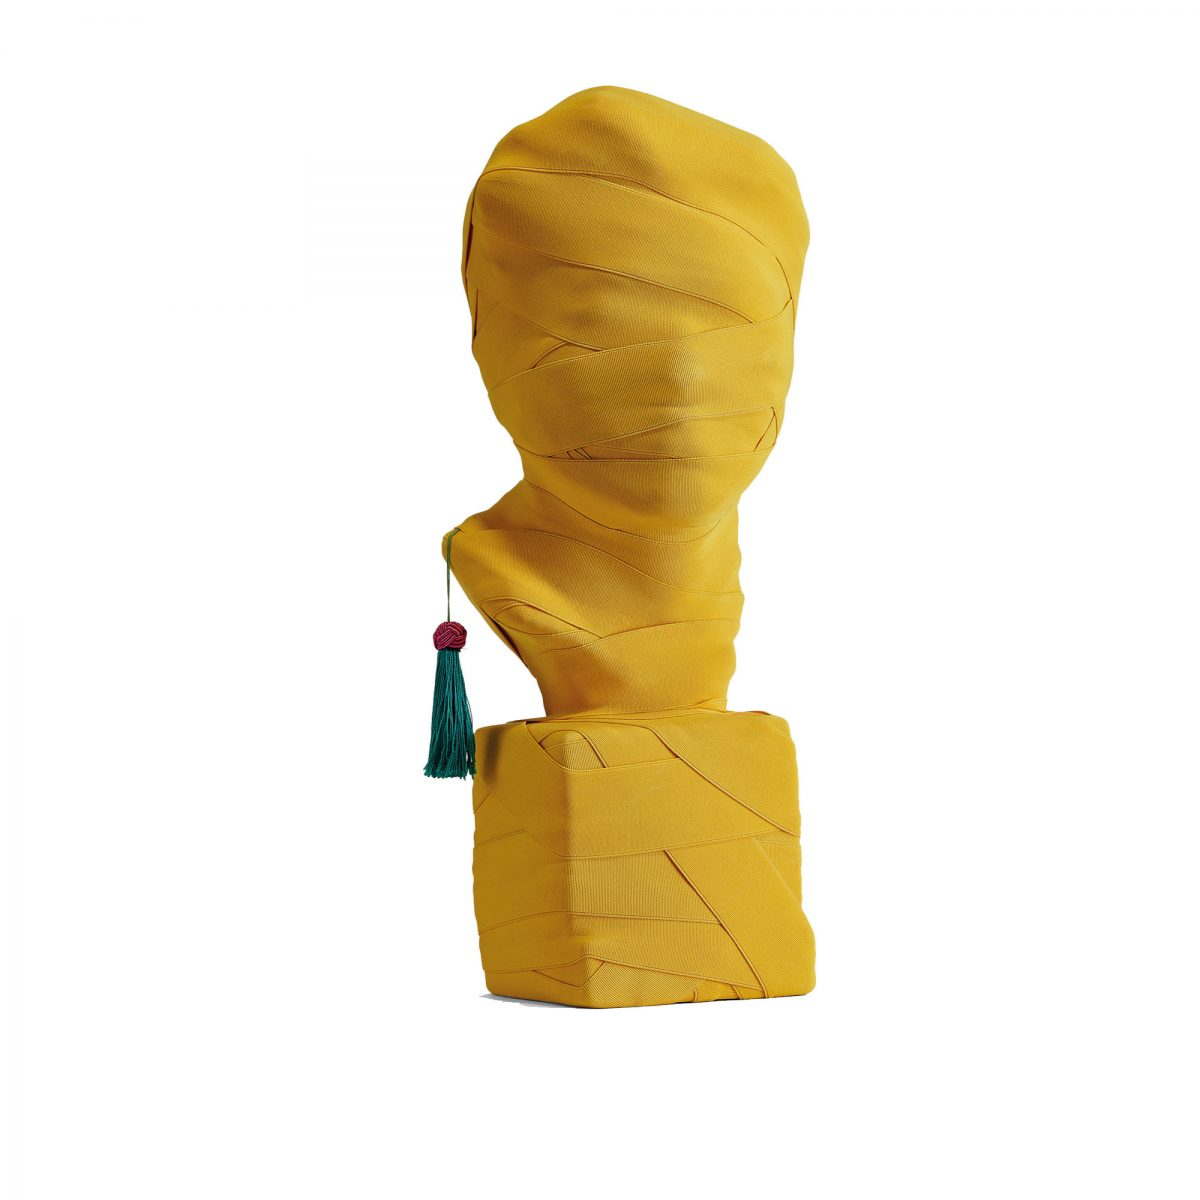 3-this_is_not_a_self_portrait_accessories_decorative_objects_yellow